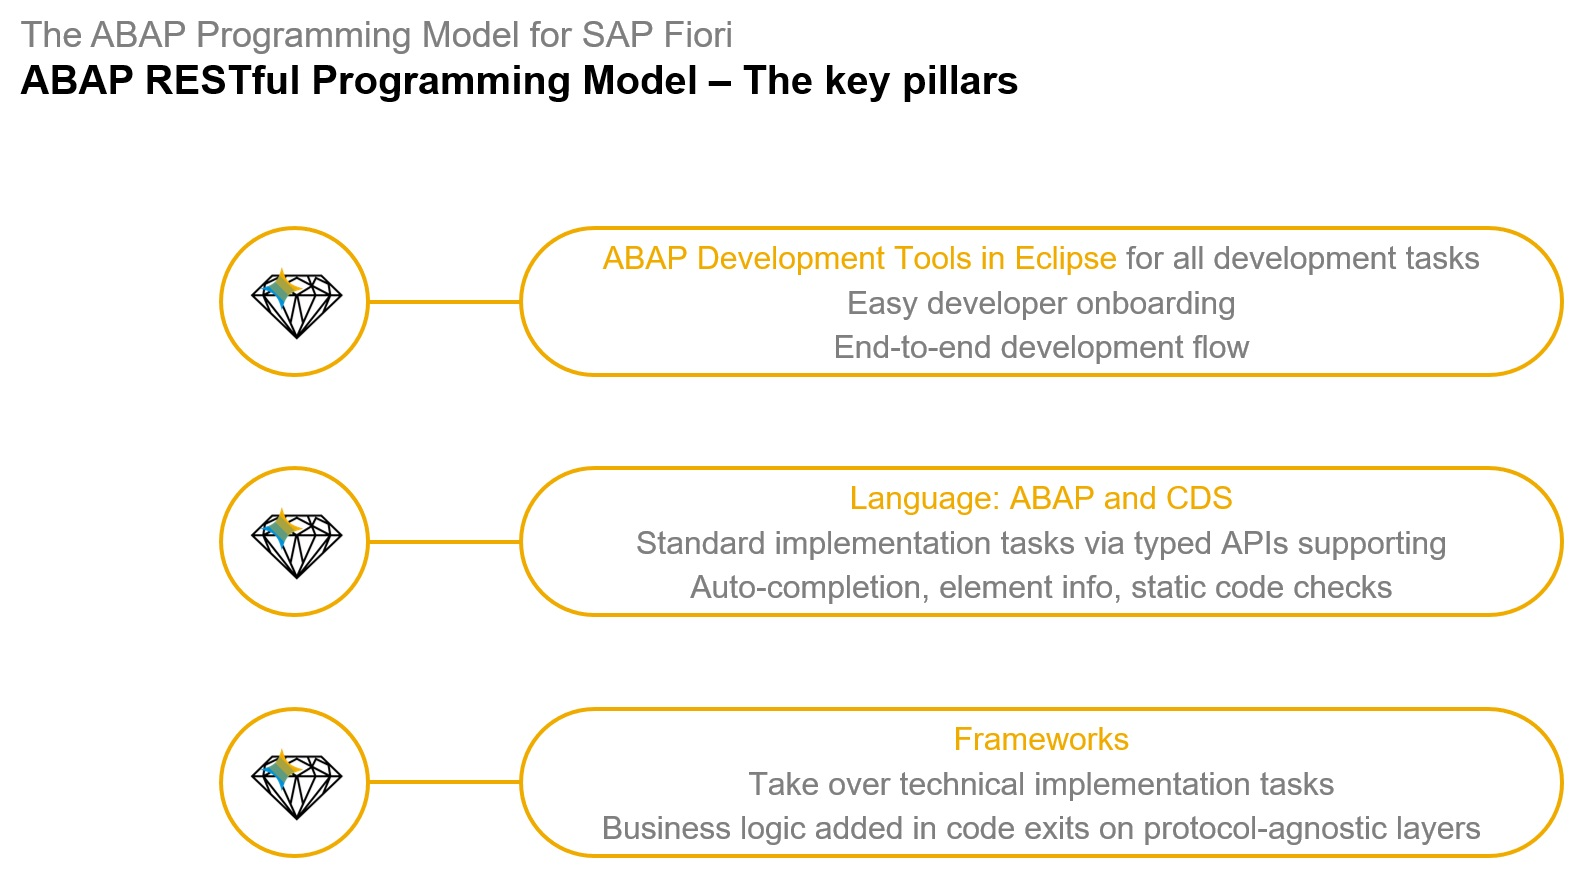 ABAP%20RESTful%20programming%20model%20-%20key%20pillars